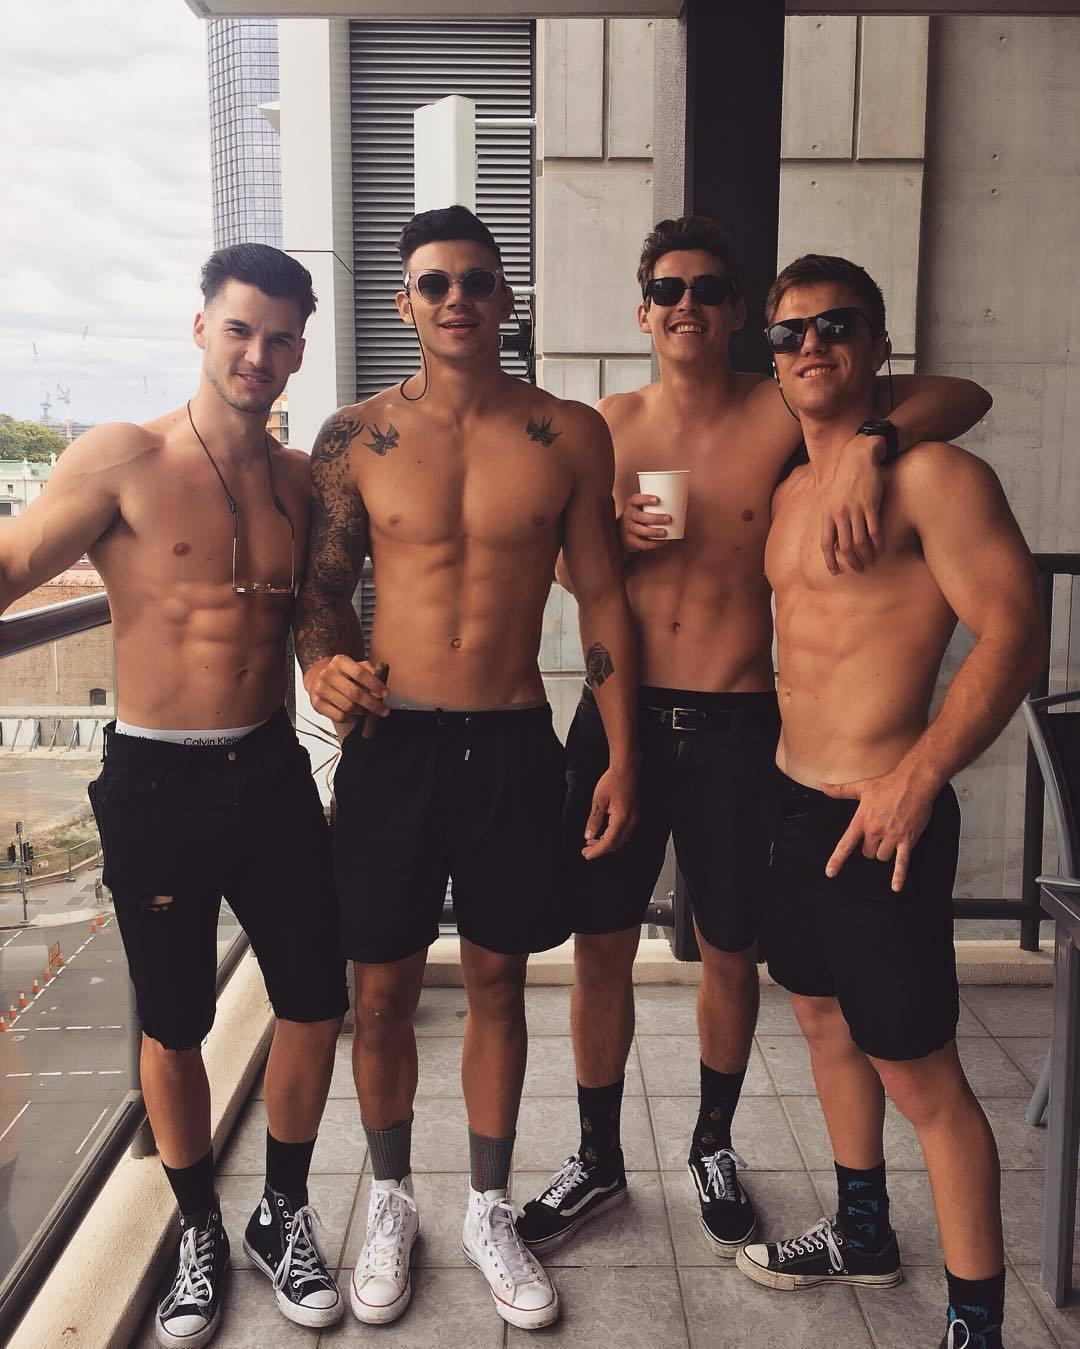 fit-four-shirtless-male-models-sunglasses-gay-friends-posing-apartment-party